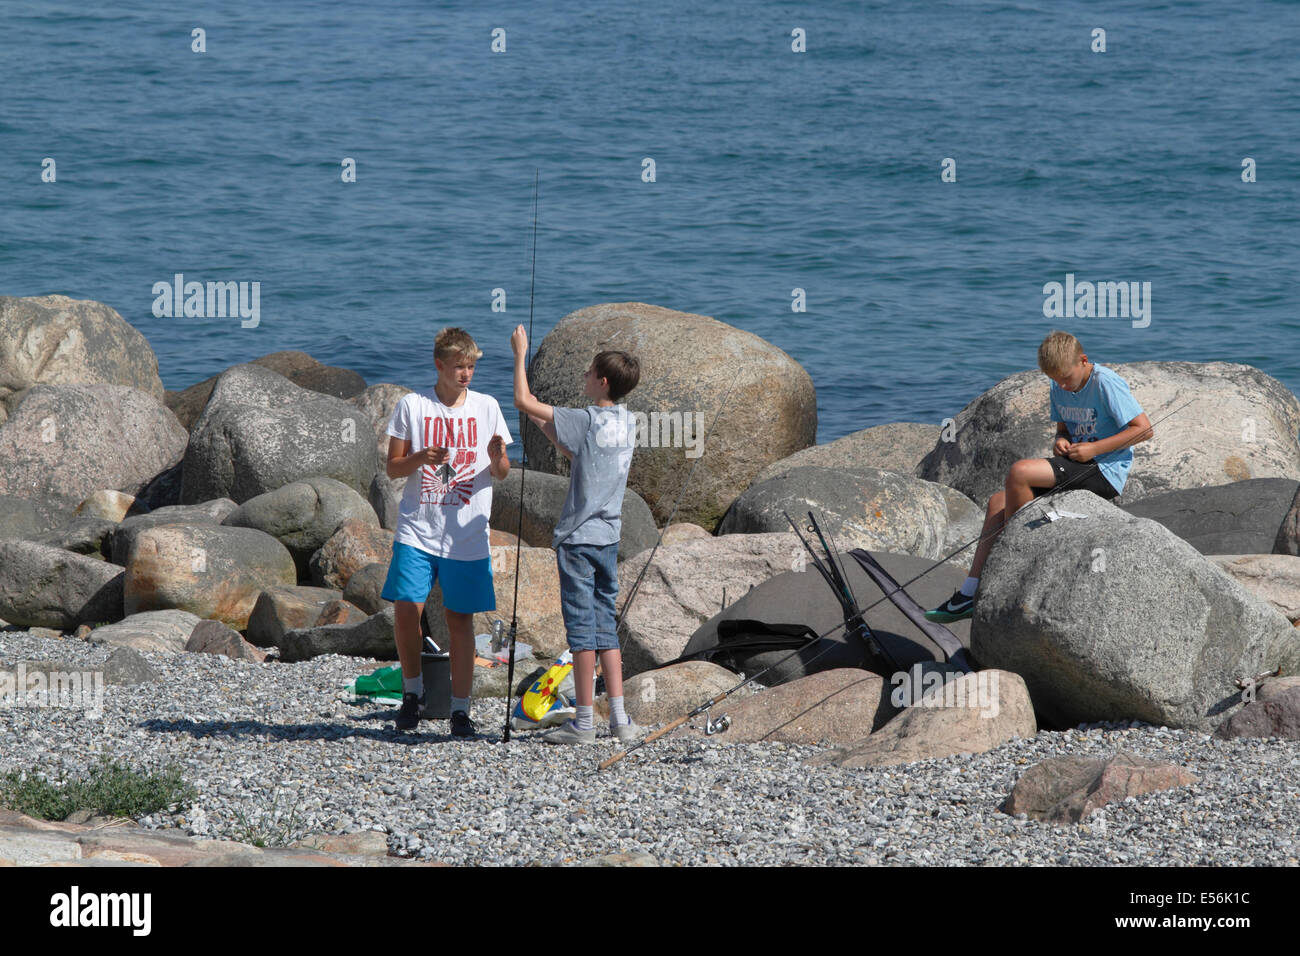 Teenage boys enjoying their summer holidays angling in the Sound, Øresund, from the Kronborg point at Helsingør - Stock Image